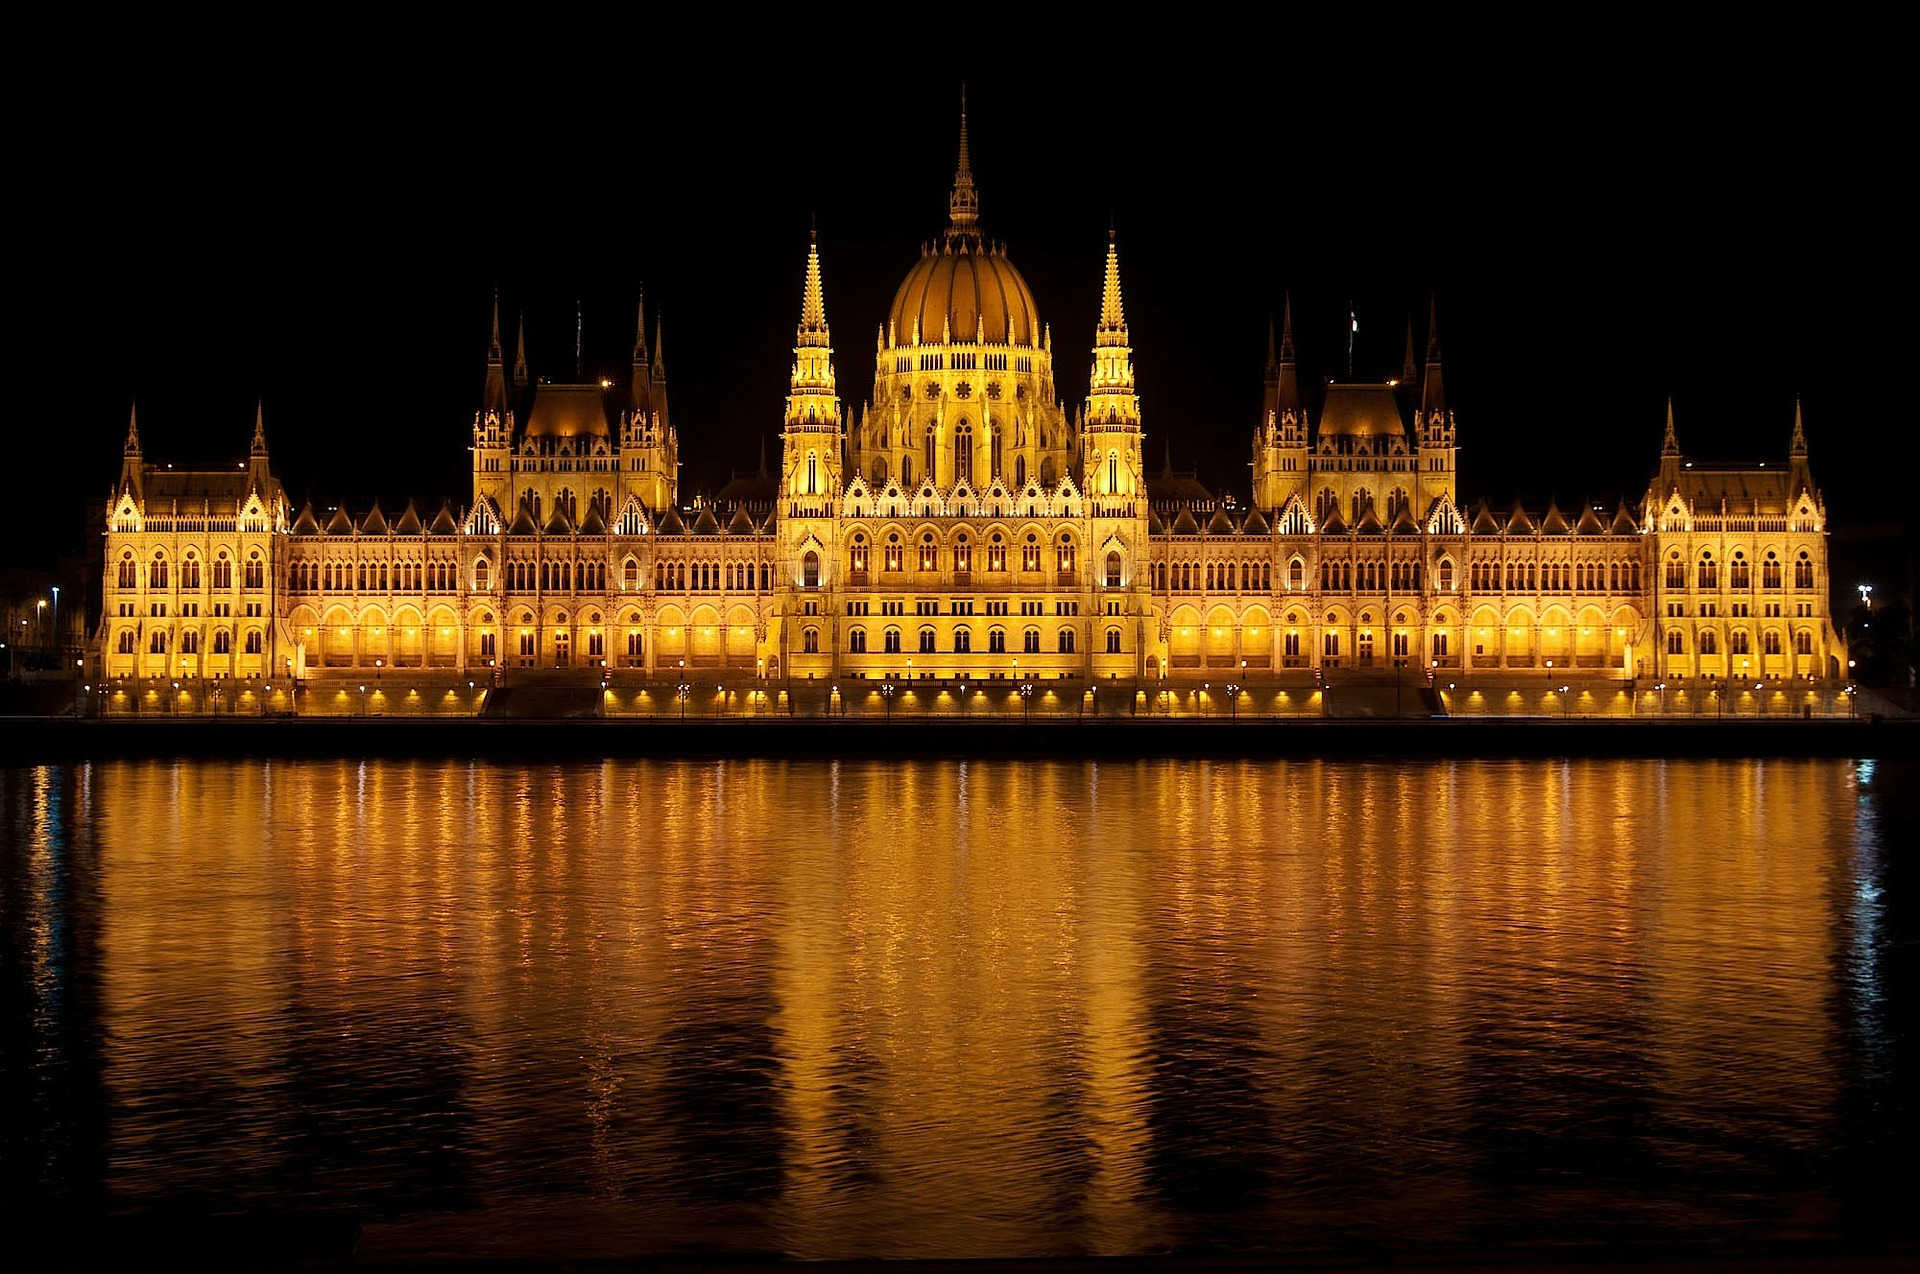 https://s3.us-east-2.amazonaws.com/withjamesbarr/genres/budapest-parliament.jpg